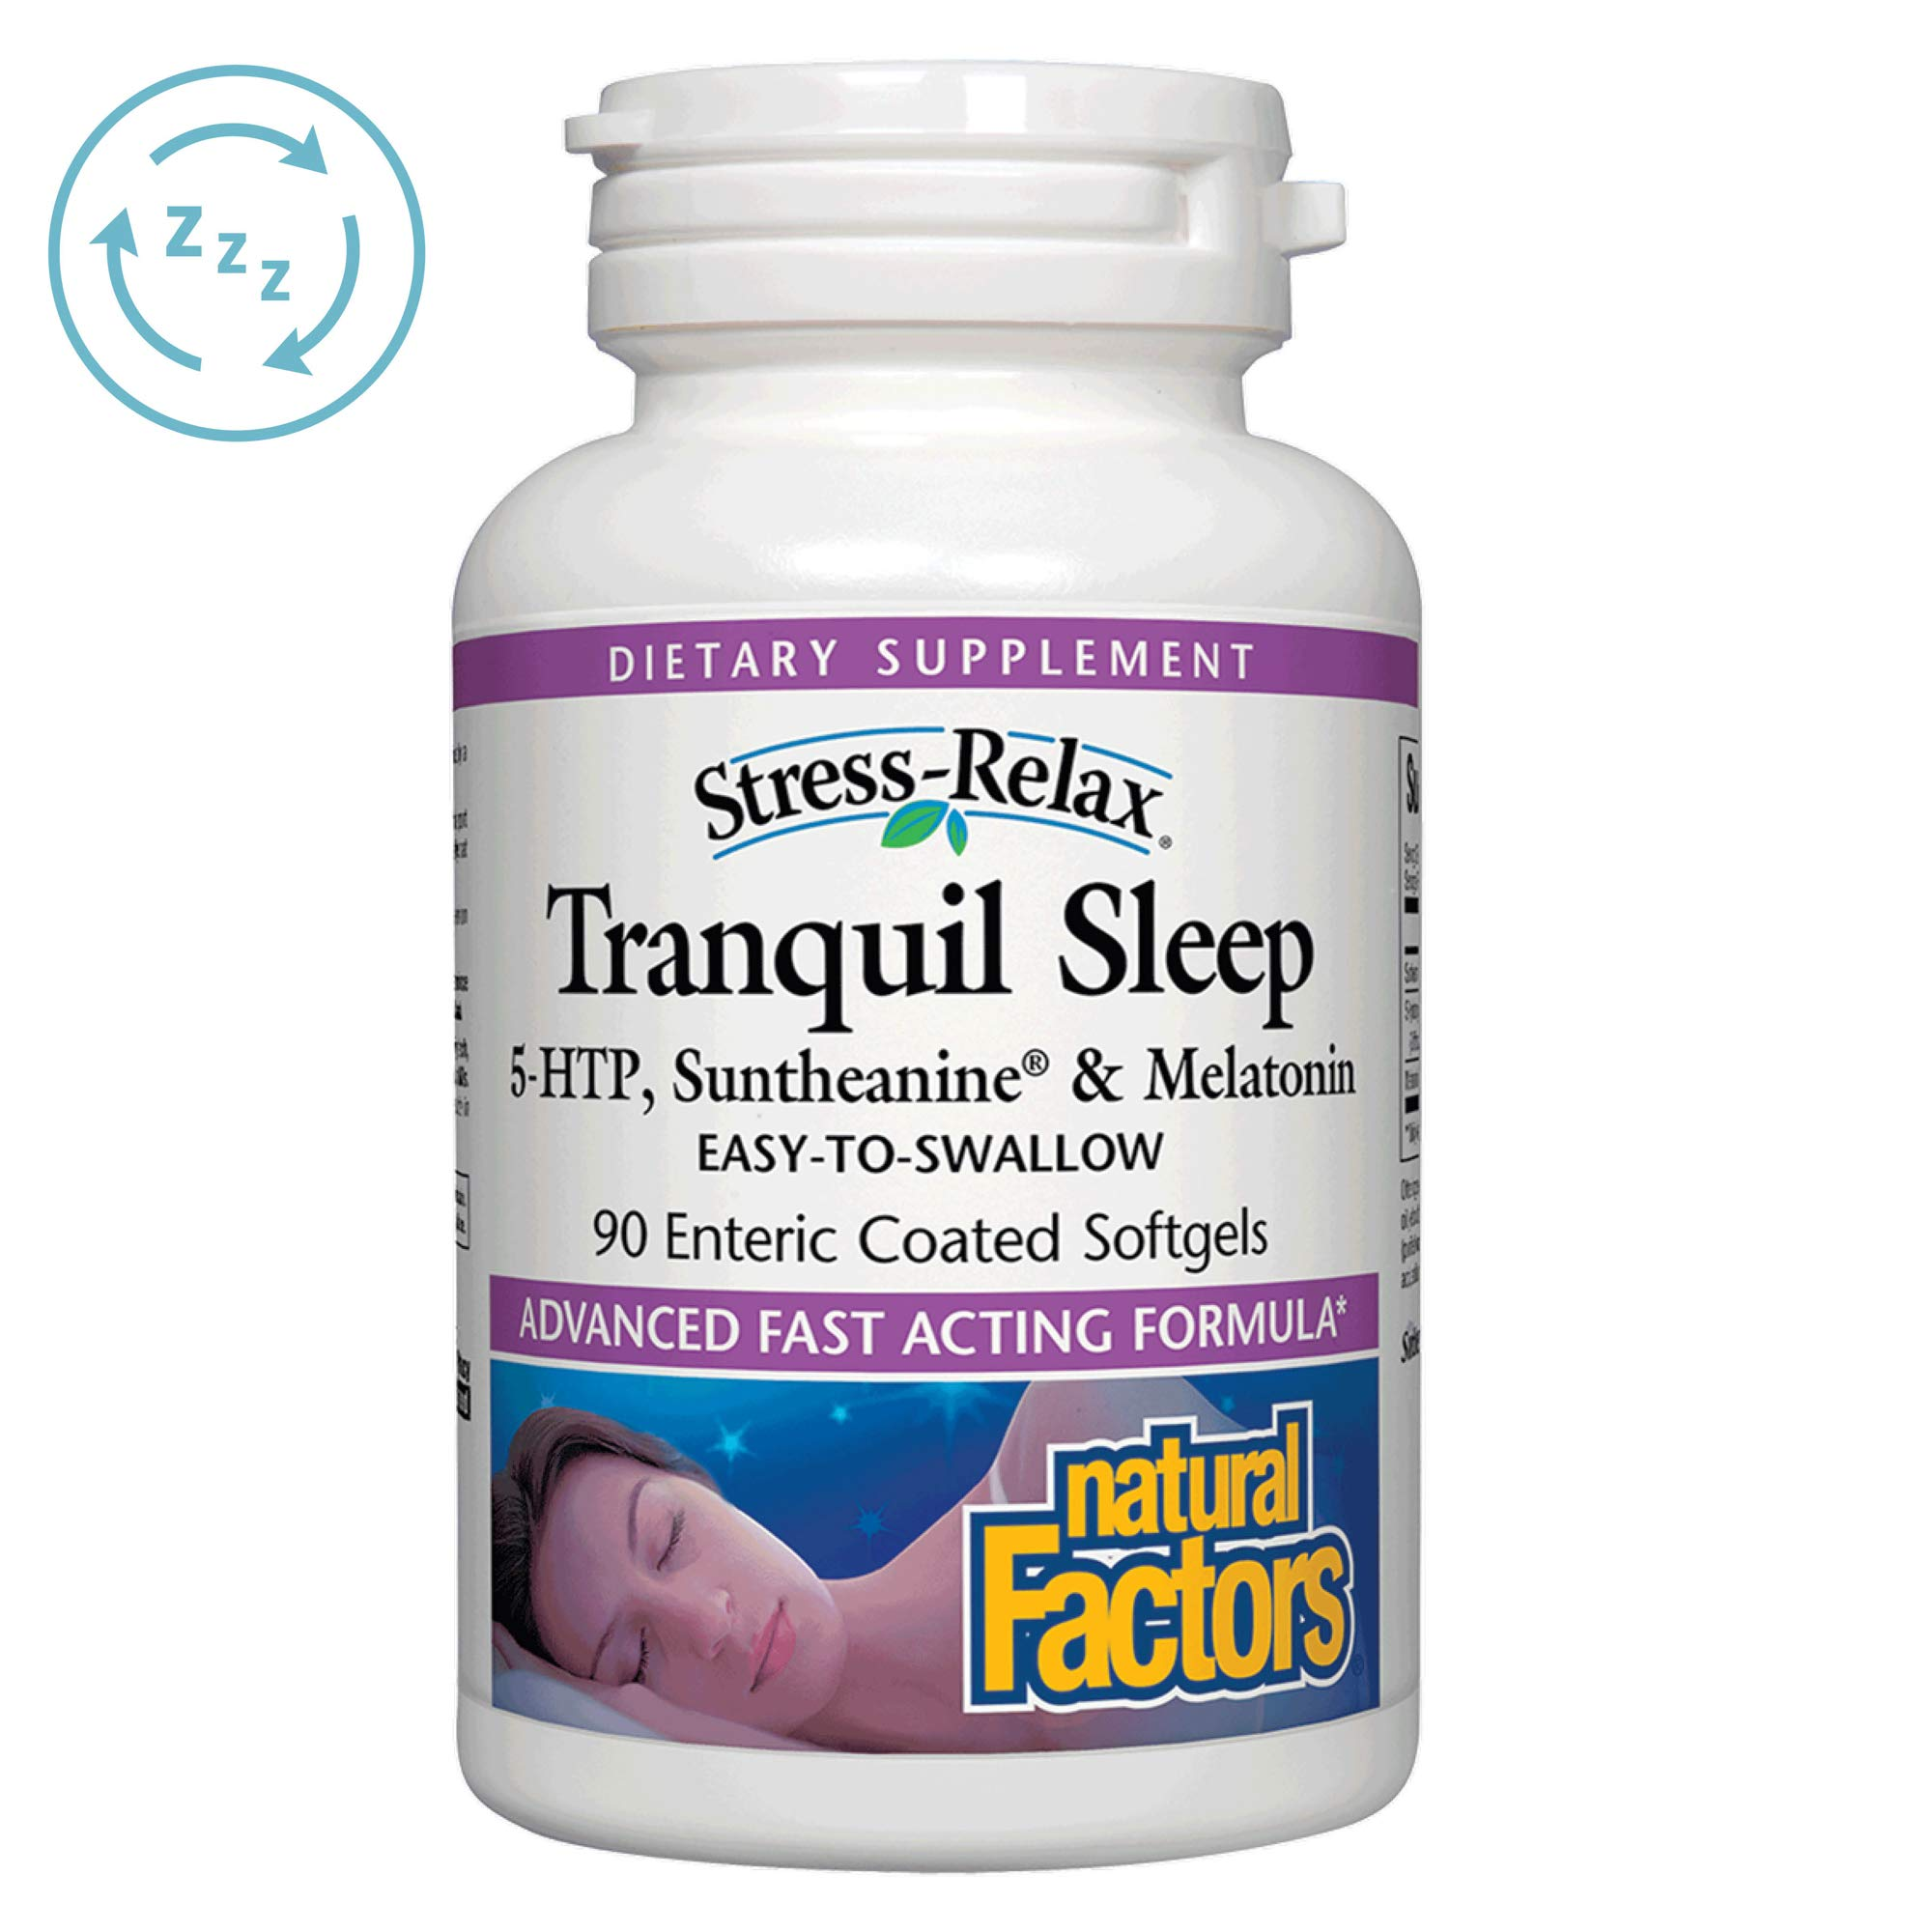 Stress-Relax Tranquil Sleep by Natural Factors, Sleep Aid with Suntheanine L-Theanine, 5-HTP, Melatonin, 90 softgels (45 Servings) by Natural Factors